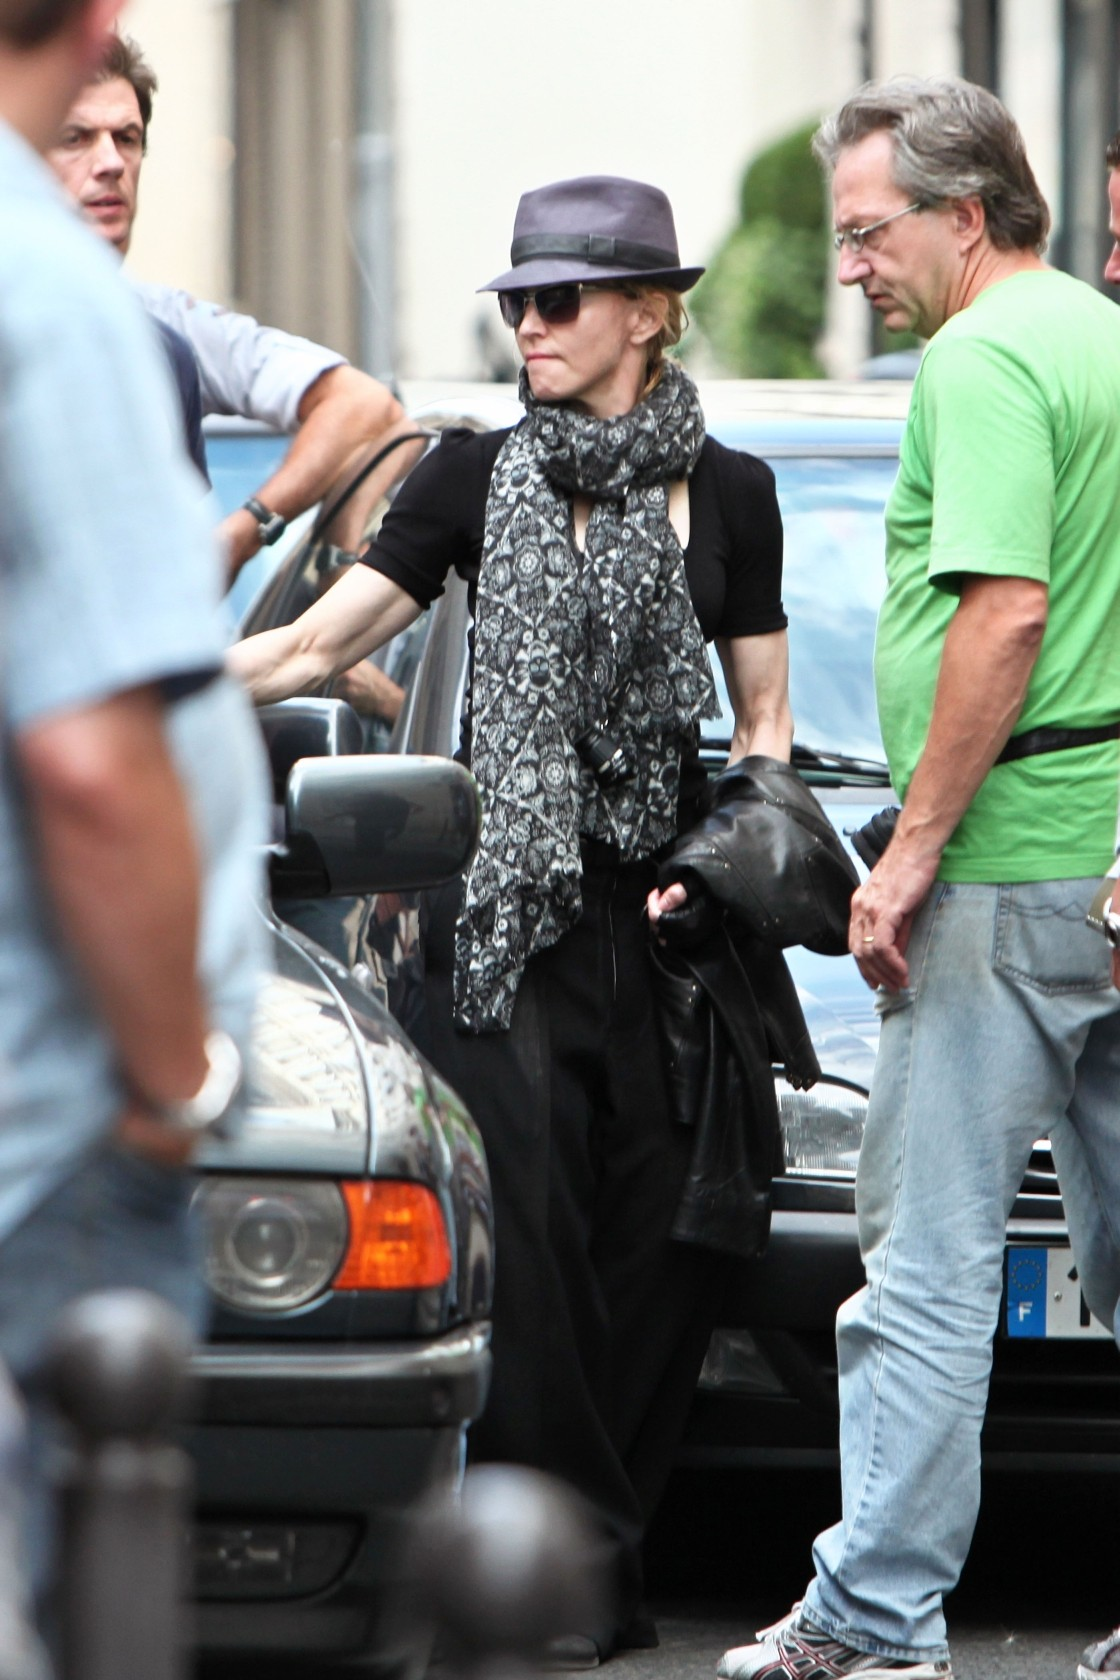 20100731-madonna-arrives-hotel-saints-peres-abmad-exclusive-12.jpg